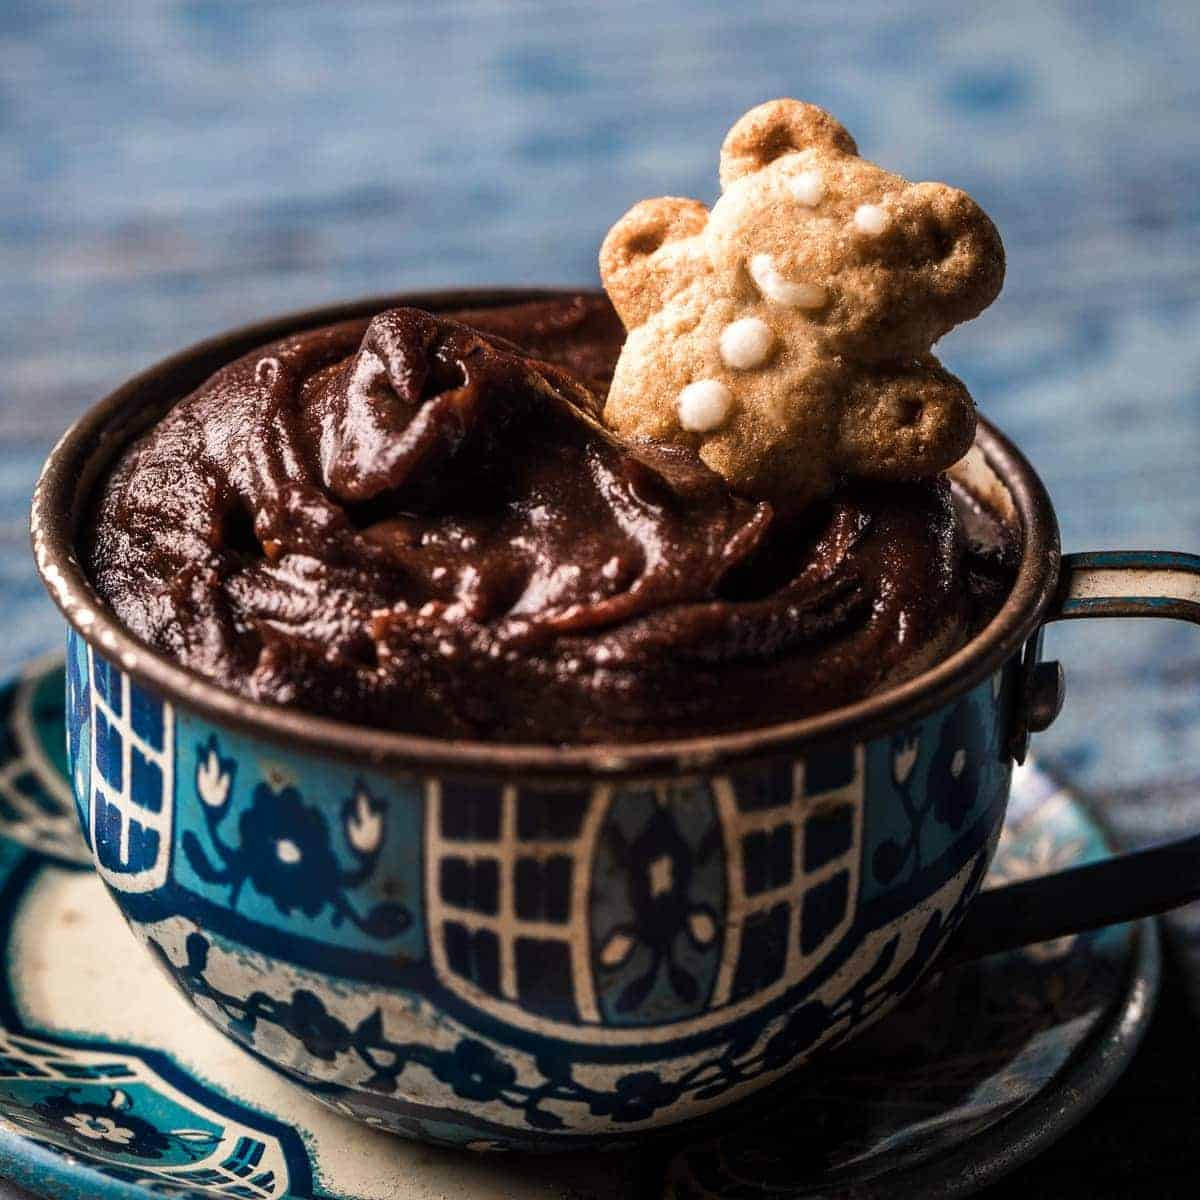 Teacup of chocolate dessert hummus with teddy bear cookies for dipping